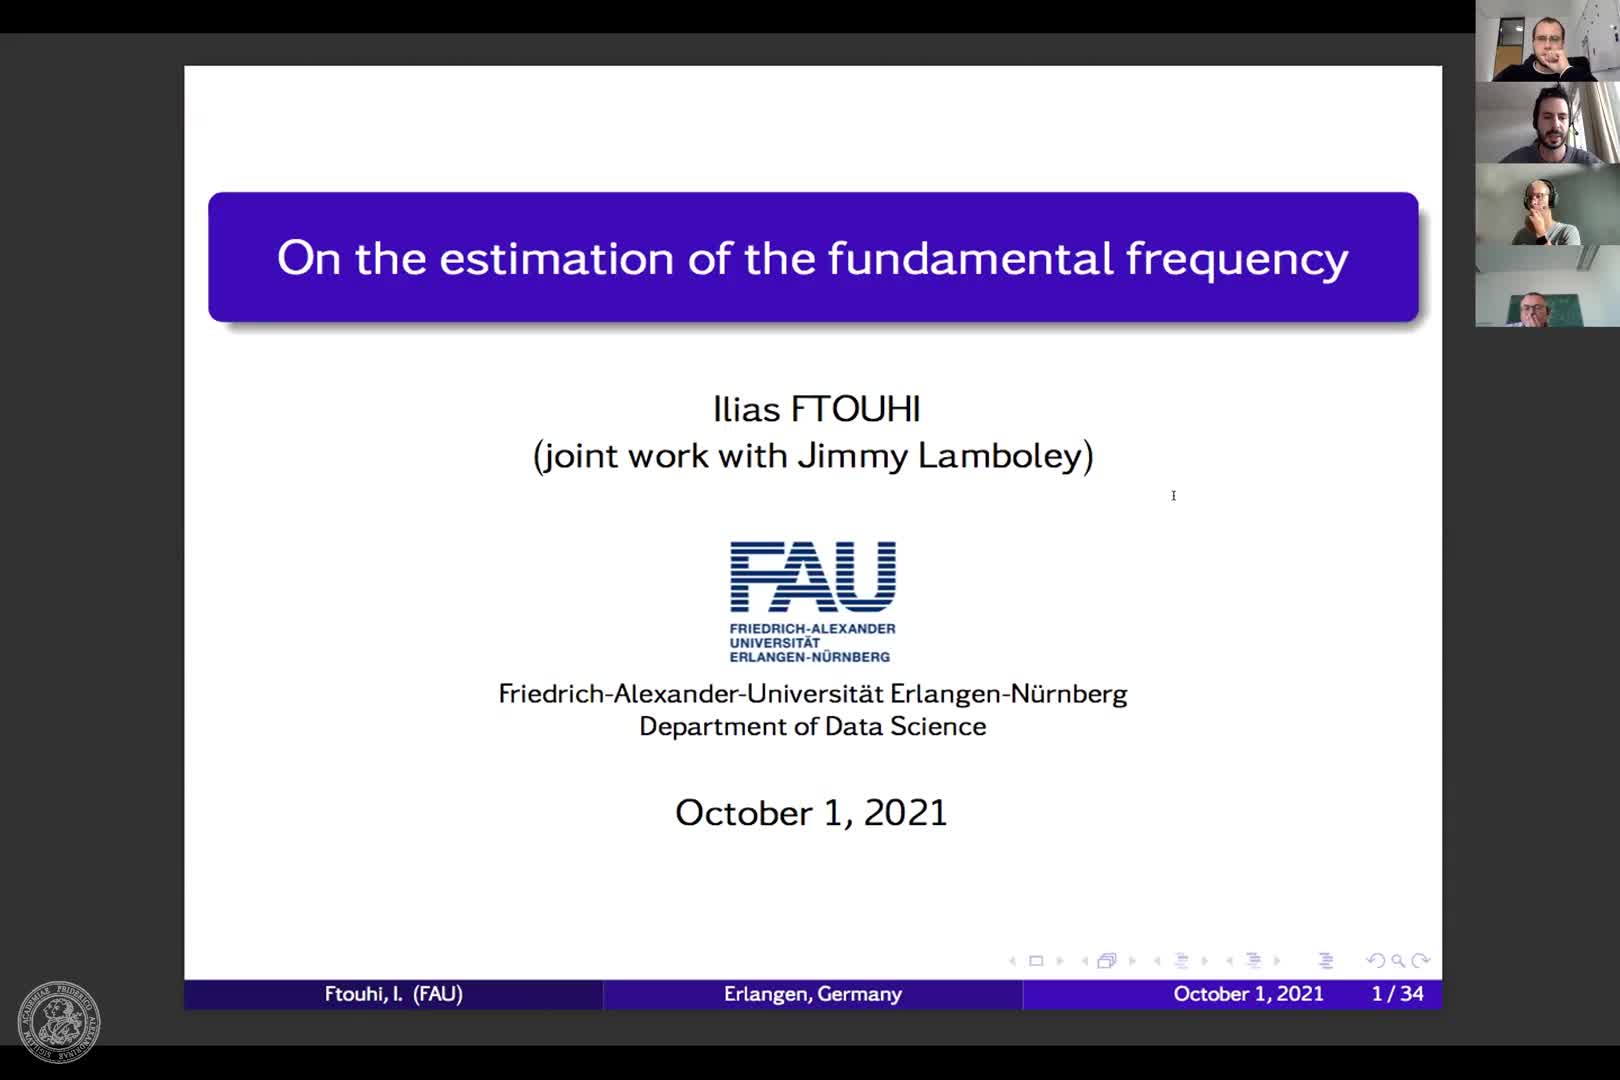 On the estimation of fundamental frequency (I. Ftouhi, FAU)) preview image